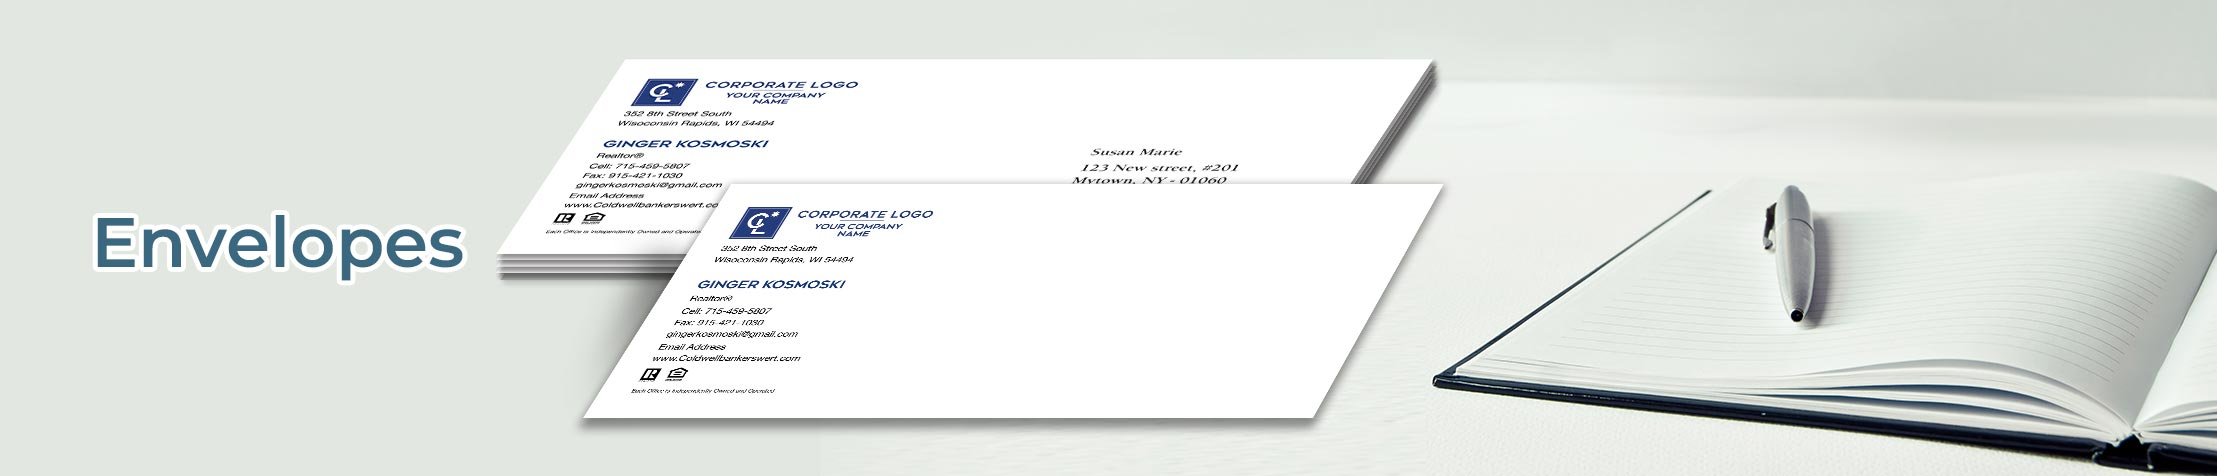 Coldwell Banker Real Estate #10 Envelopes - Coldwell Banker - Custom Stationery Templates for Coldwell Banker Offices and Real Estate Agents | BestPrintBuy.com